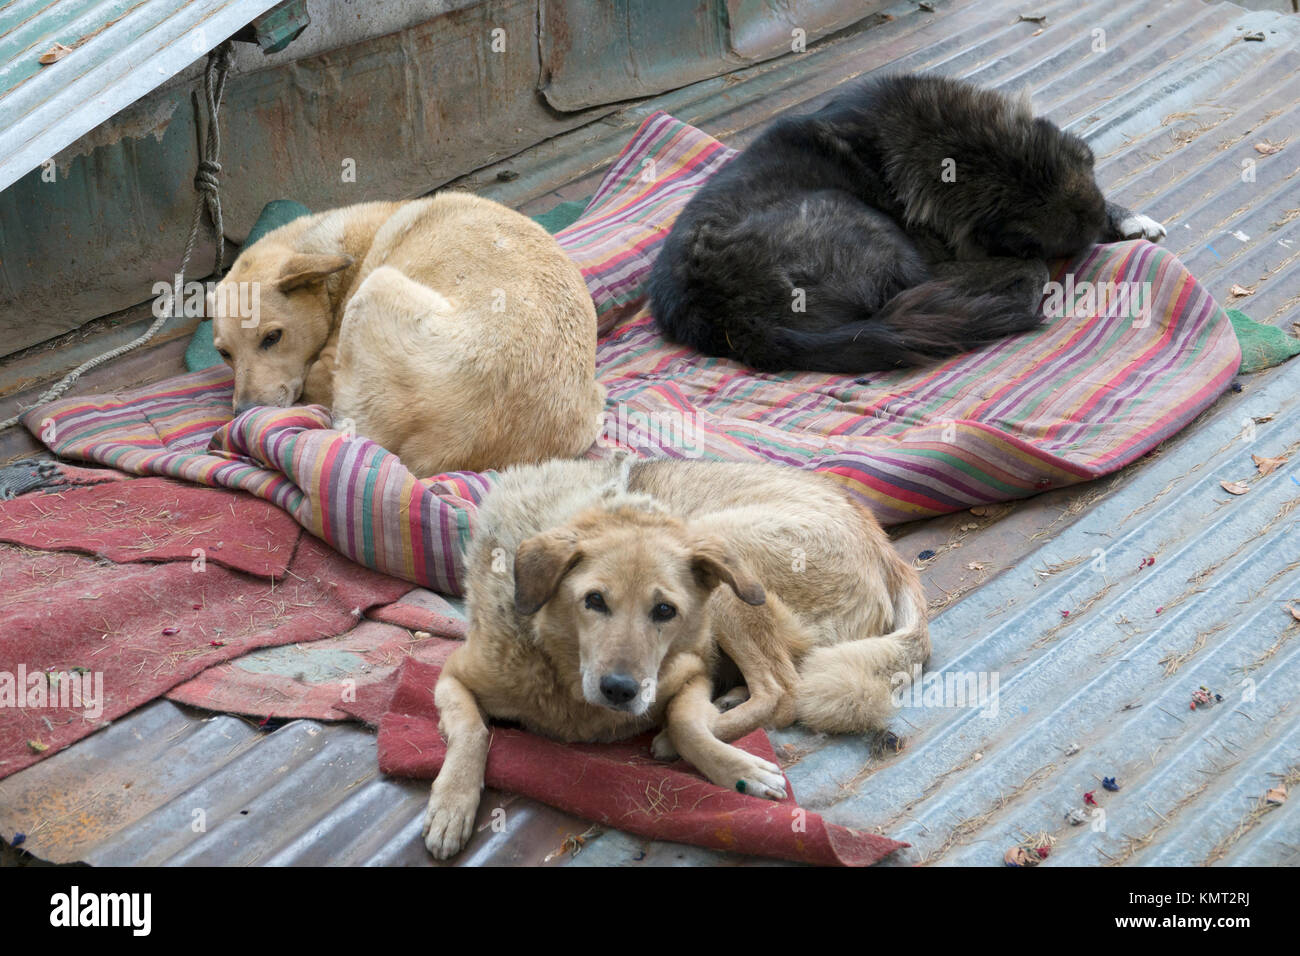 Indian Stray Dogs Stock Photos & Indian Stray Dogs Stock